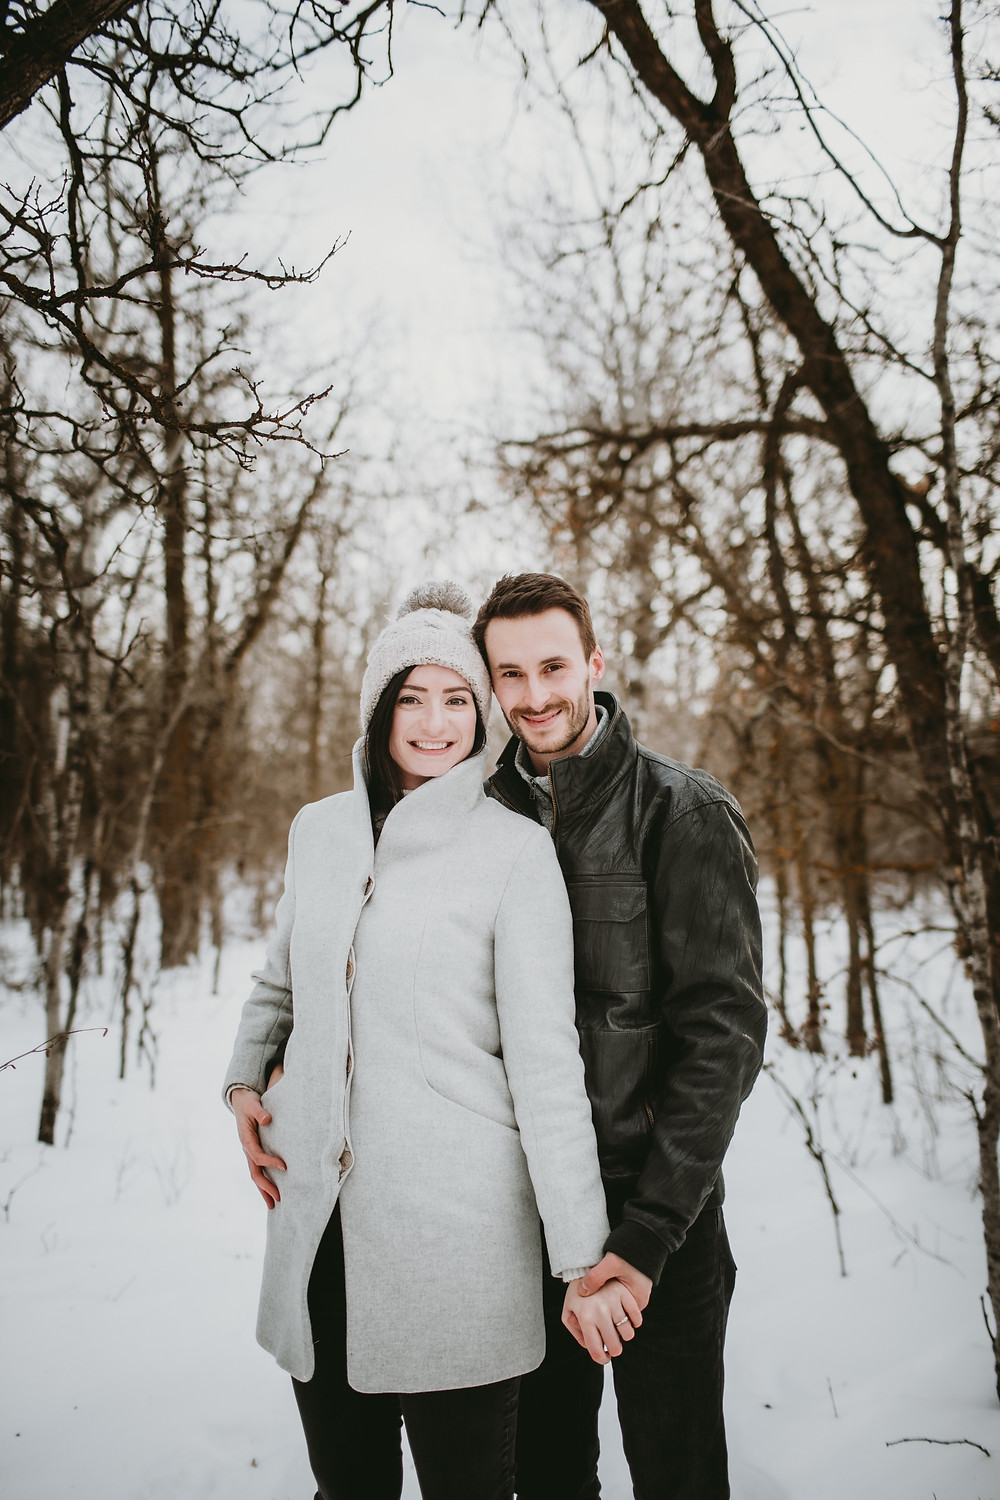 Winter engagement portraits in Winnipeg, Manitoba.